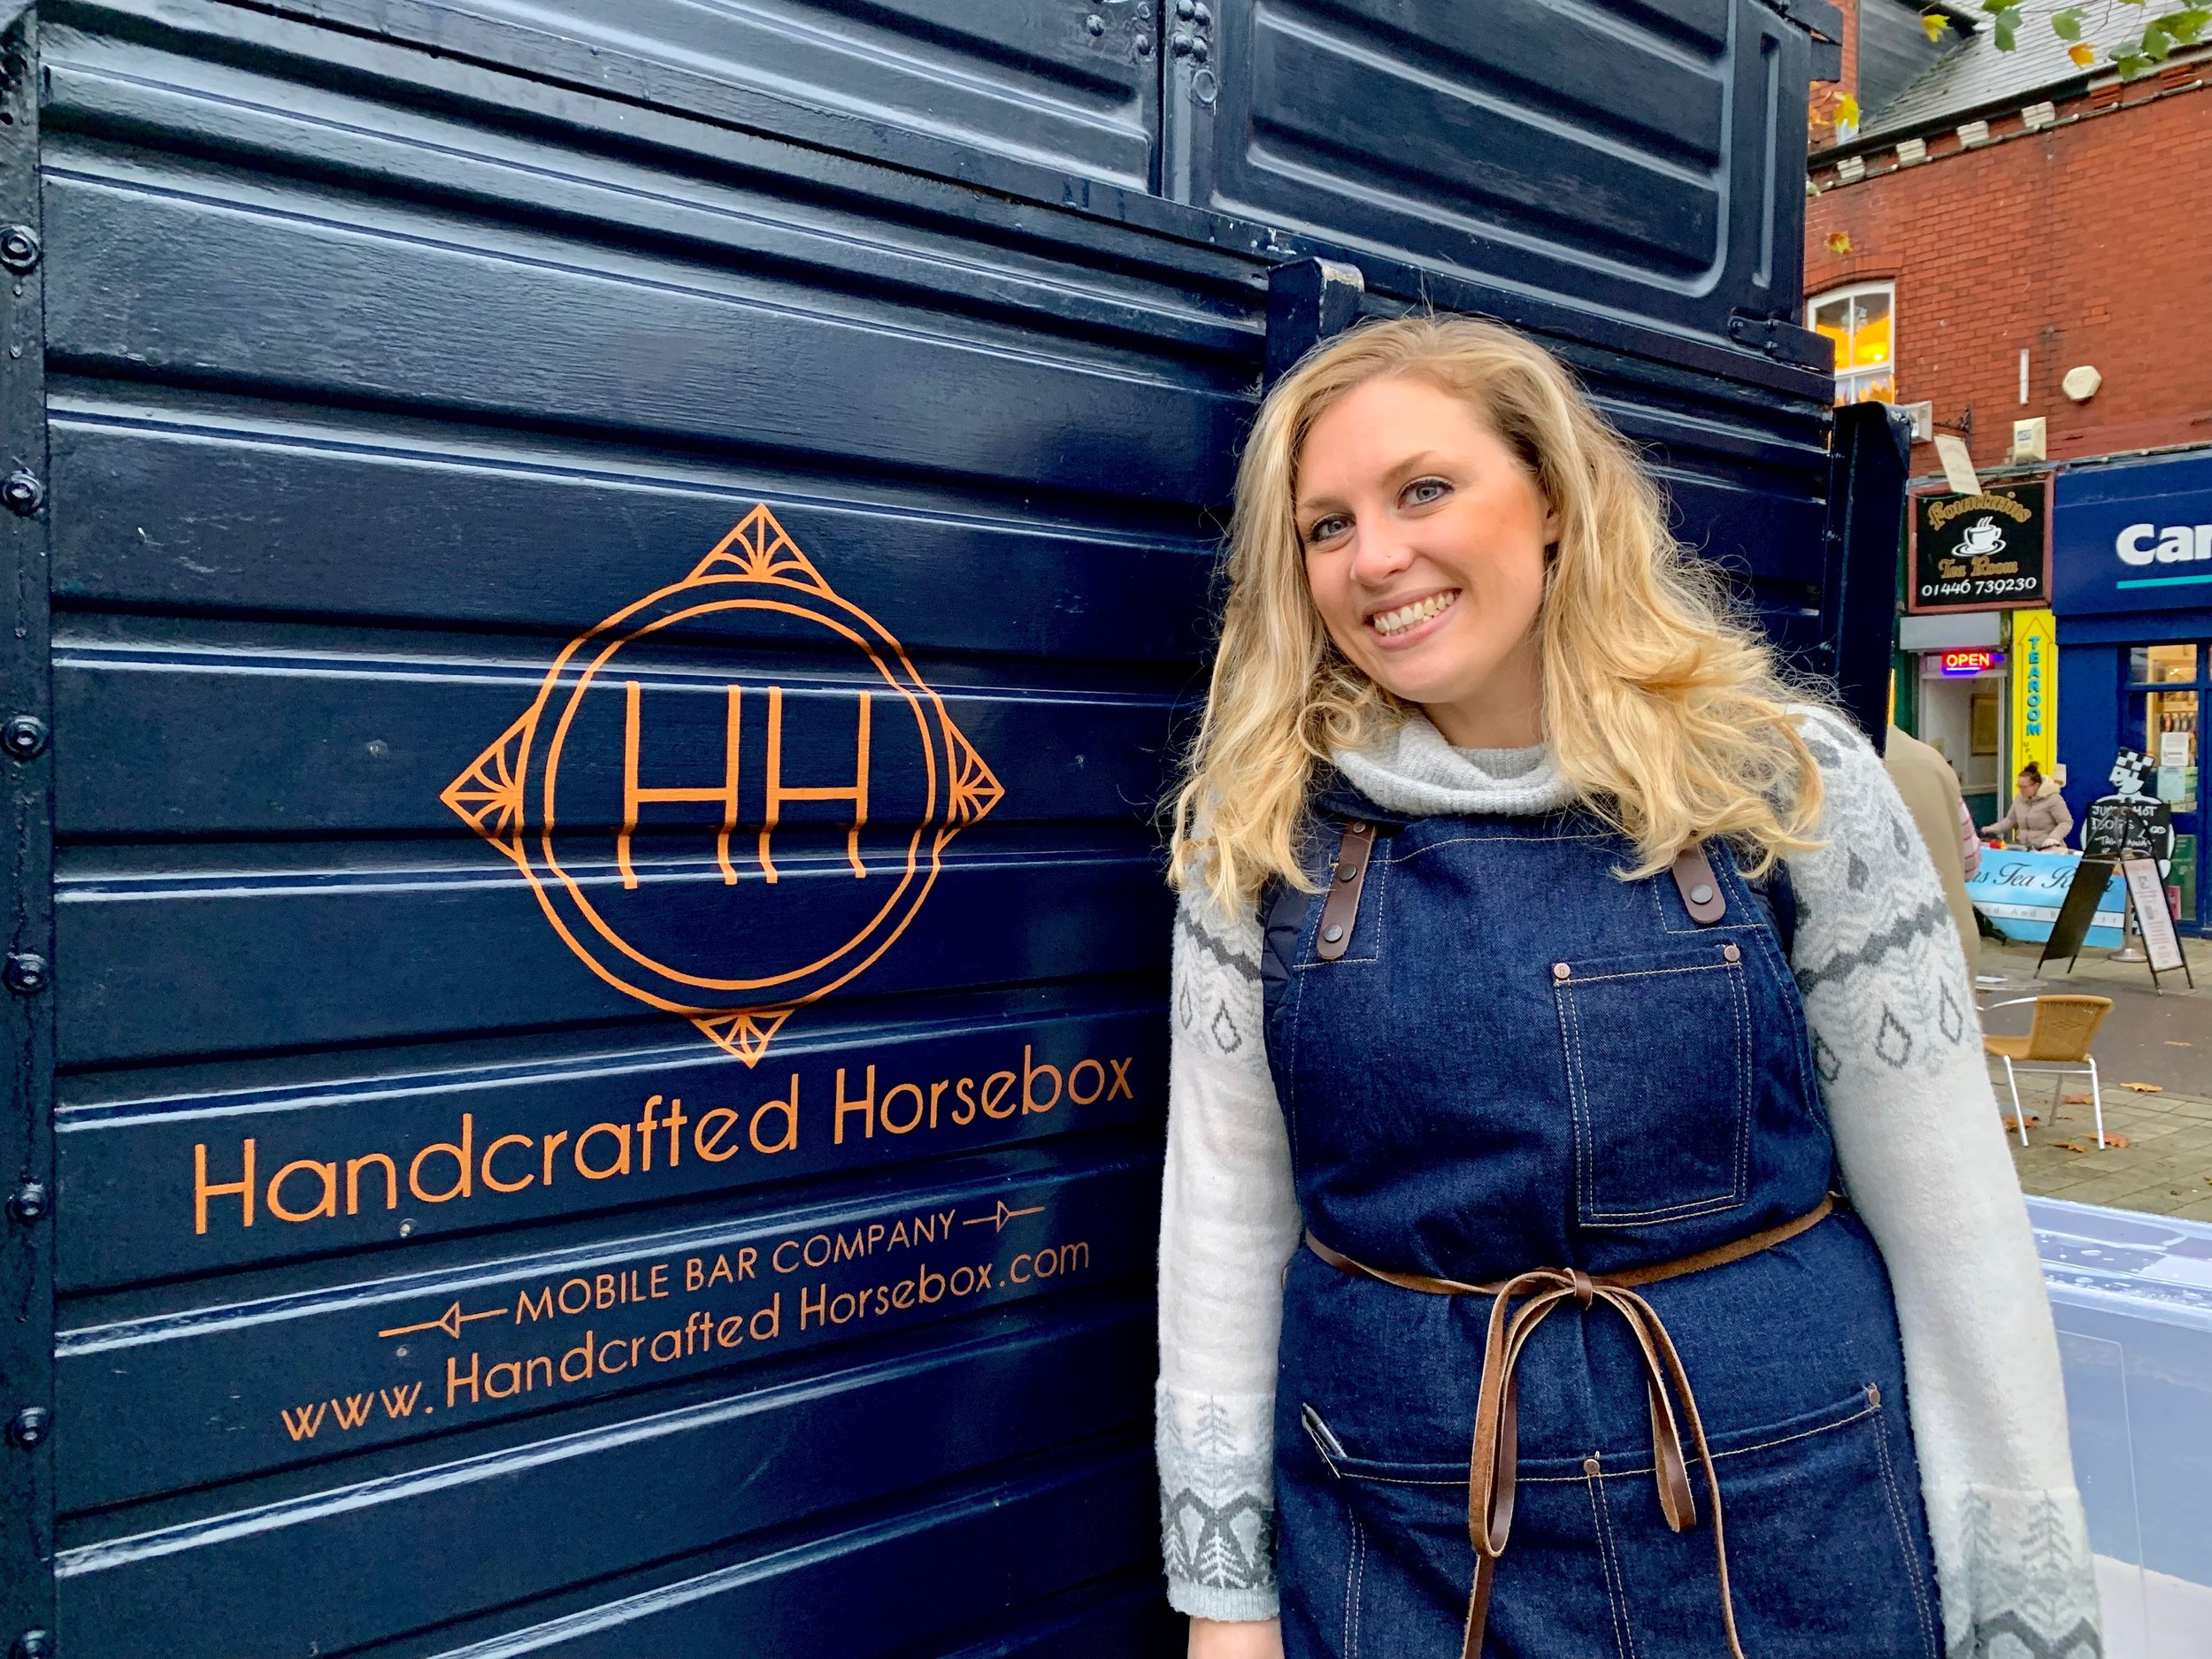 Liz - The style behind the operation, chief Prosecco taster and host of many a great party. When not doing the 'day job' or looking after the troublesome duo (see below) will be behind the bar ensuring our events go to plan.